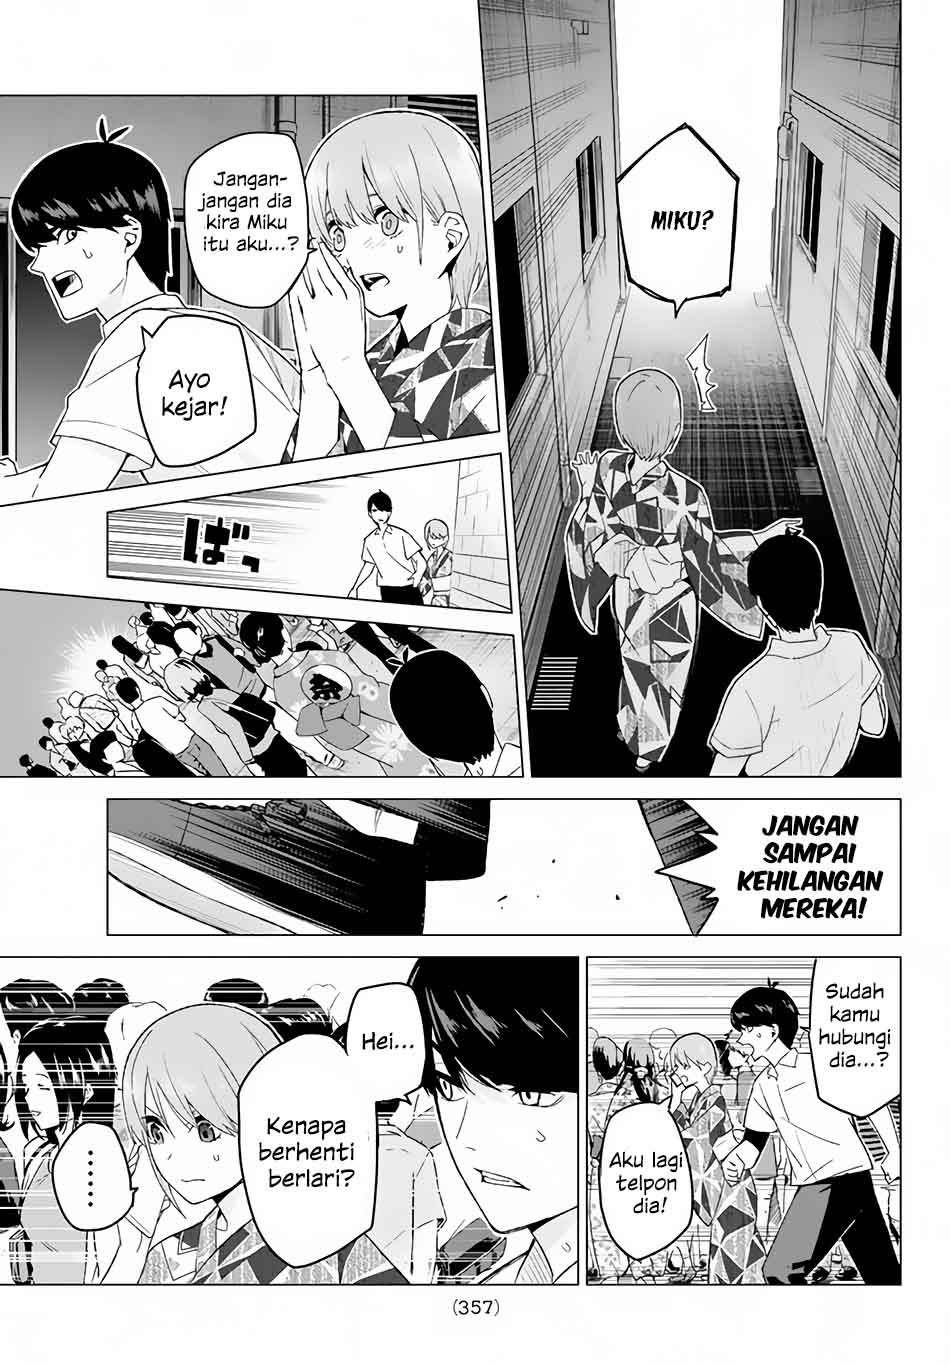 Baca Komik Go-toubun No Hanayome Chapter 10 Bahasa Indonesia